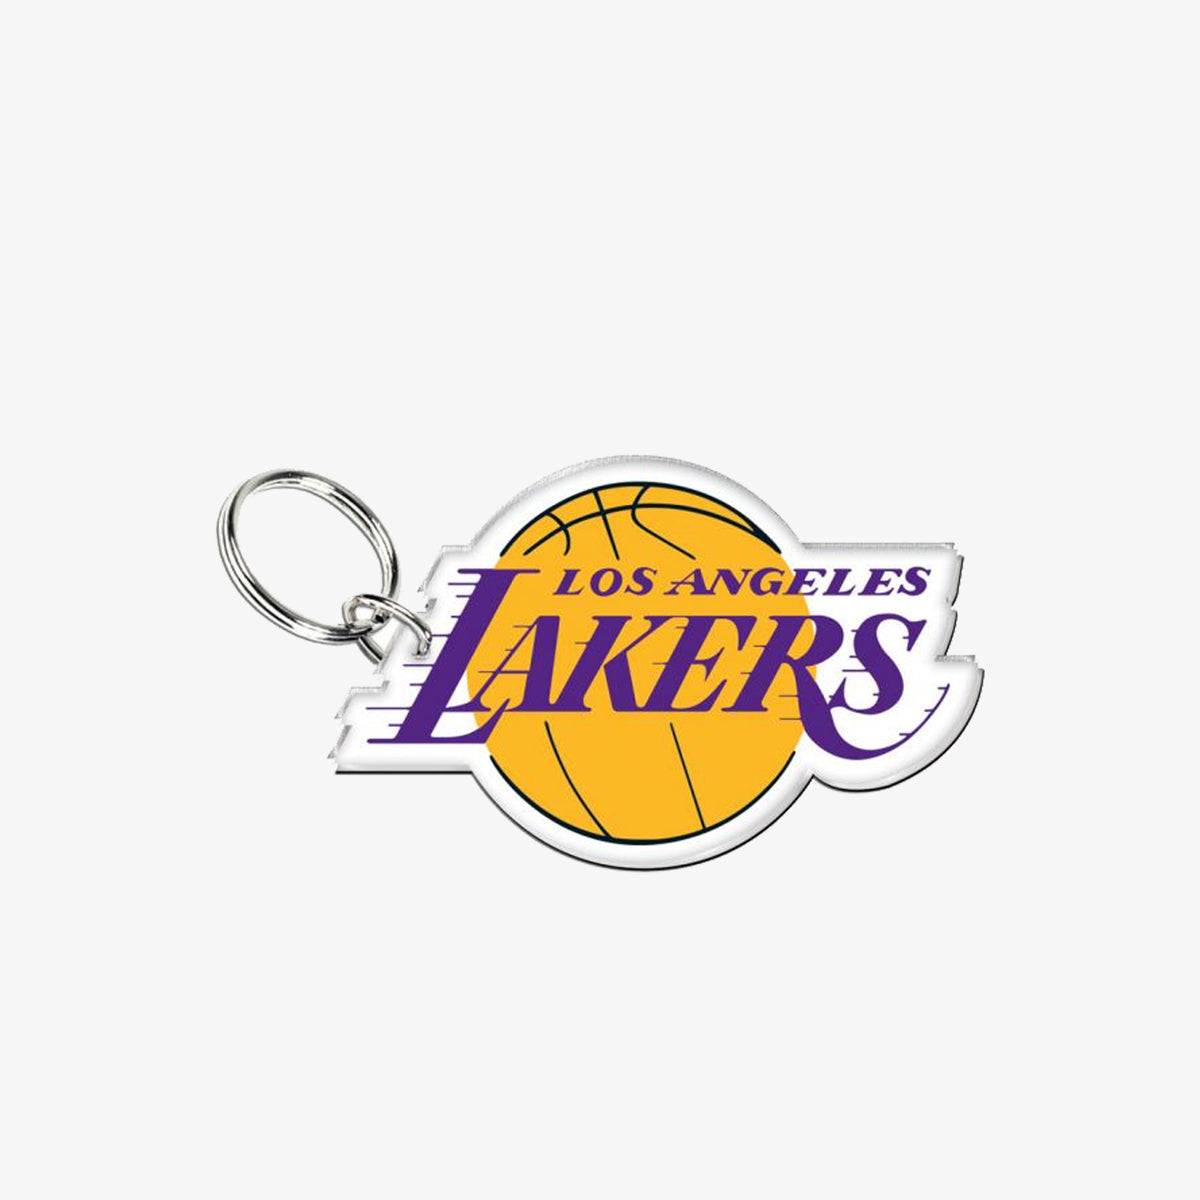 Los Angeles Lakers Premium Acrylic Key Ring